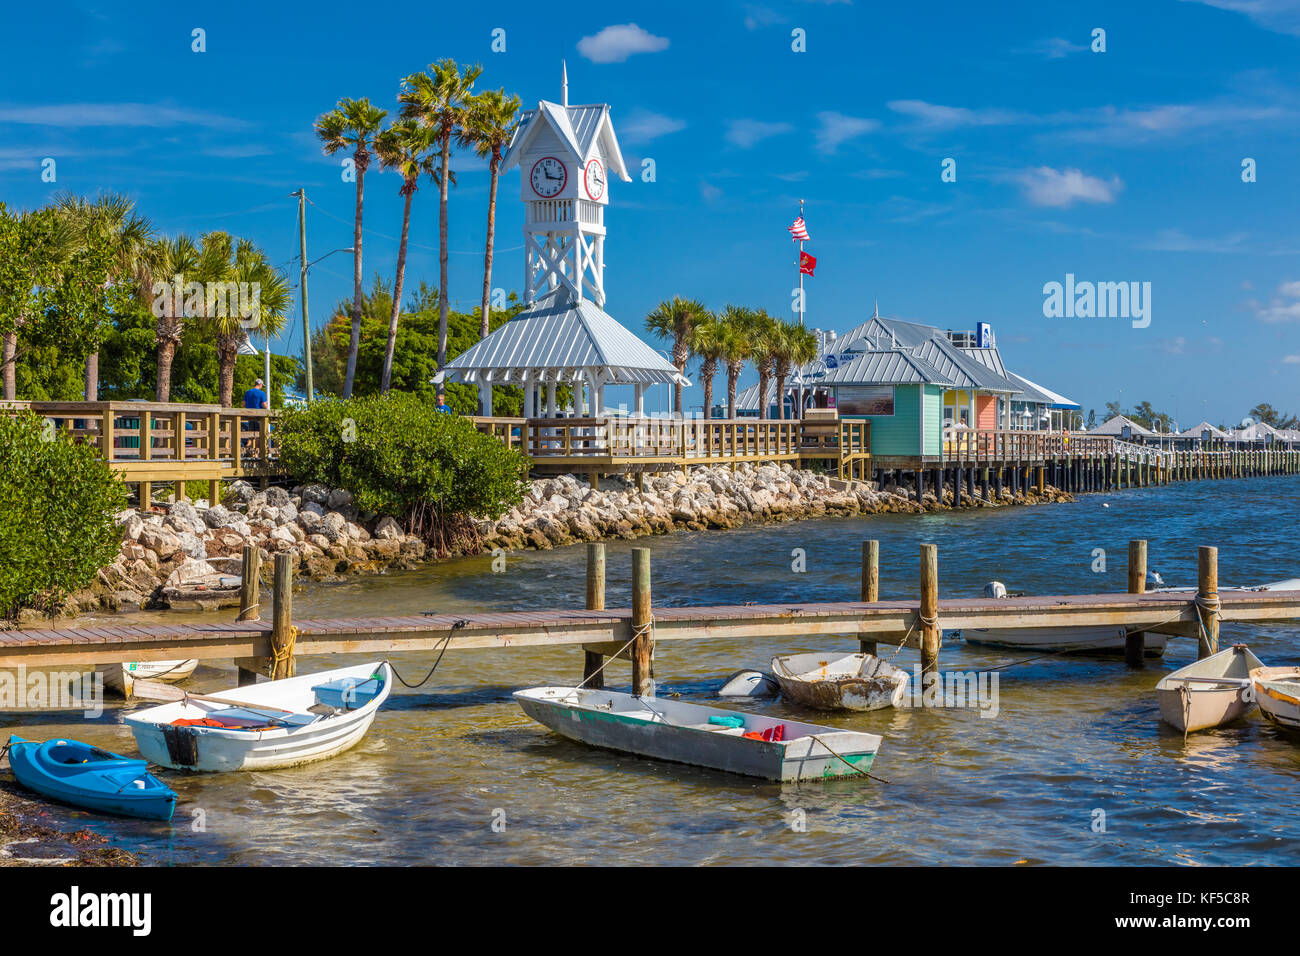 Bridge Street Pier and clock tower on Anna Maria Island in